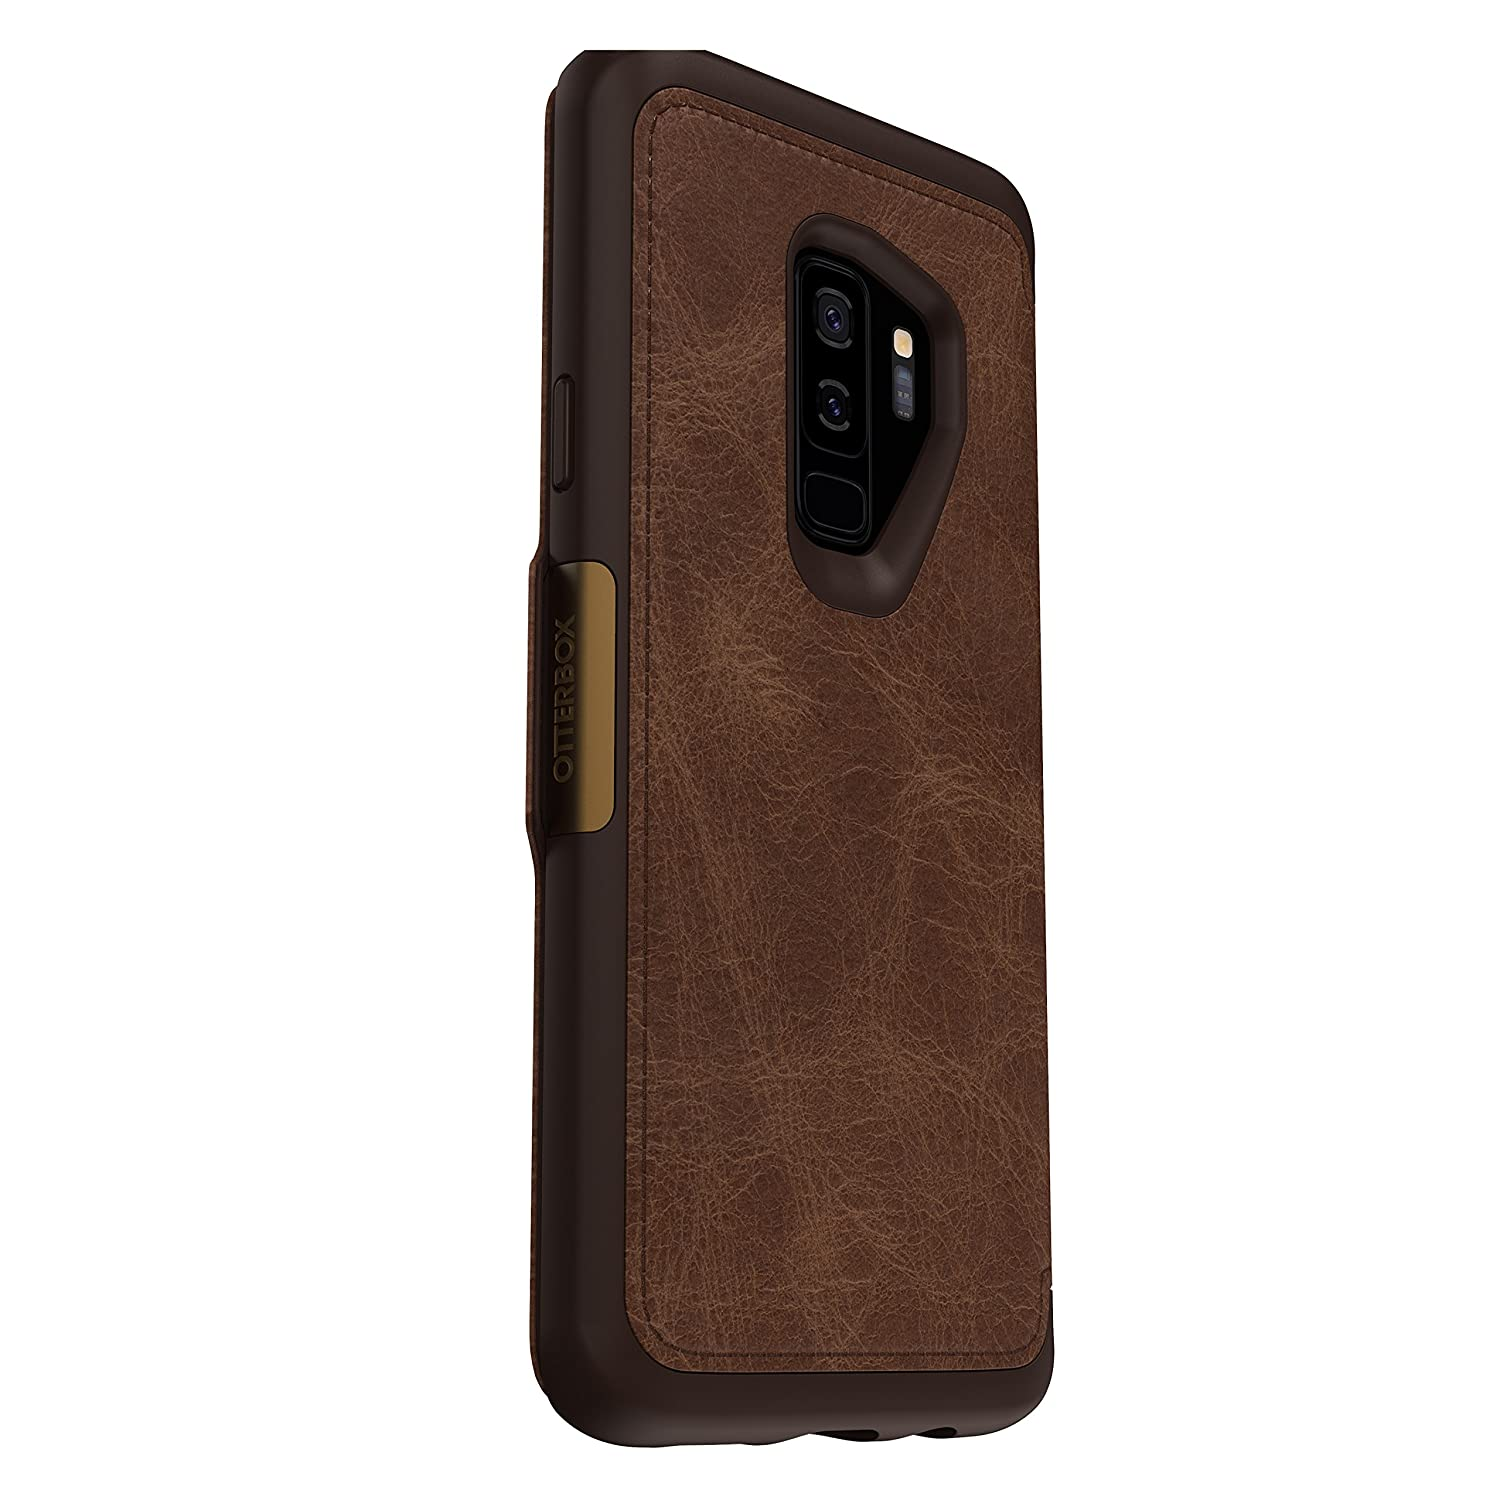 online store 7f975 1c043 OtterBox STRADA SERIES Case for Samsung Galaxy S9+ - Retail Packaging -  ESPRESSO (DARK BROWN/WORN BROWN LEATHER)